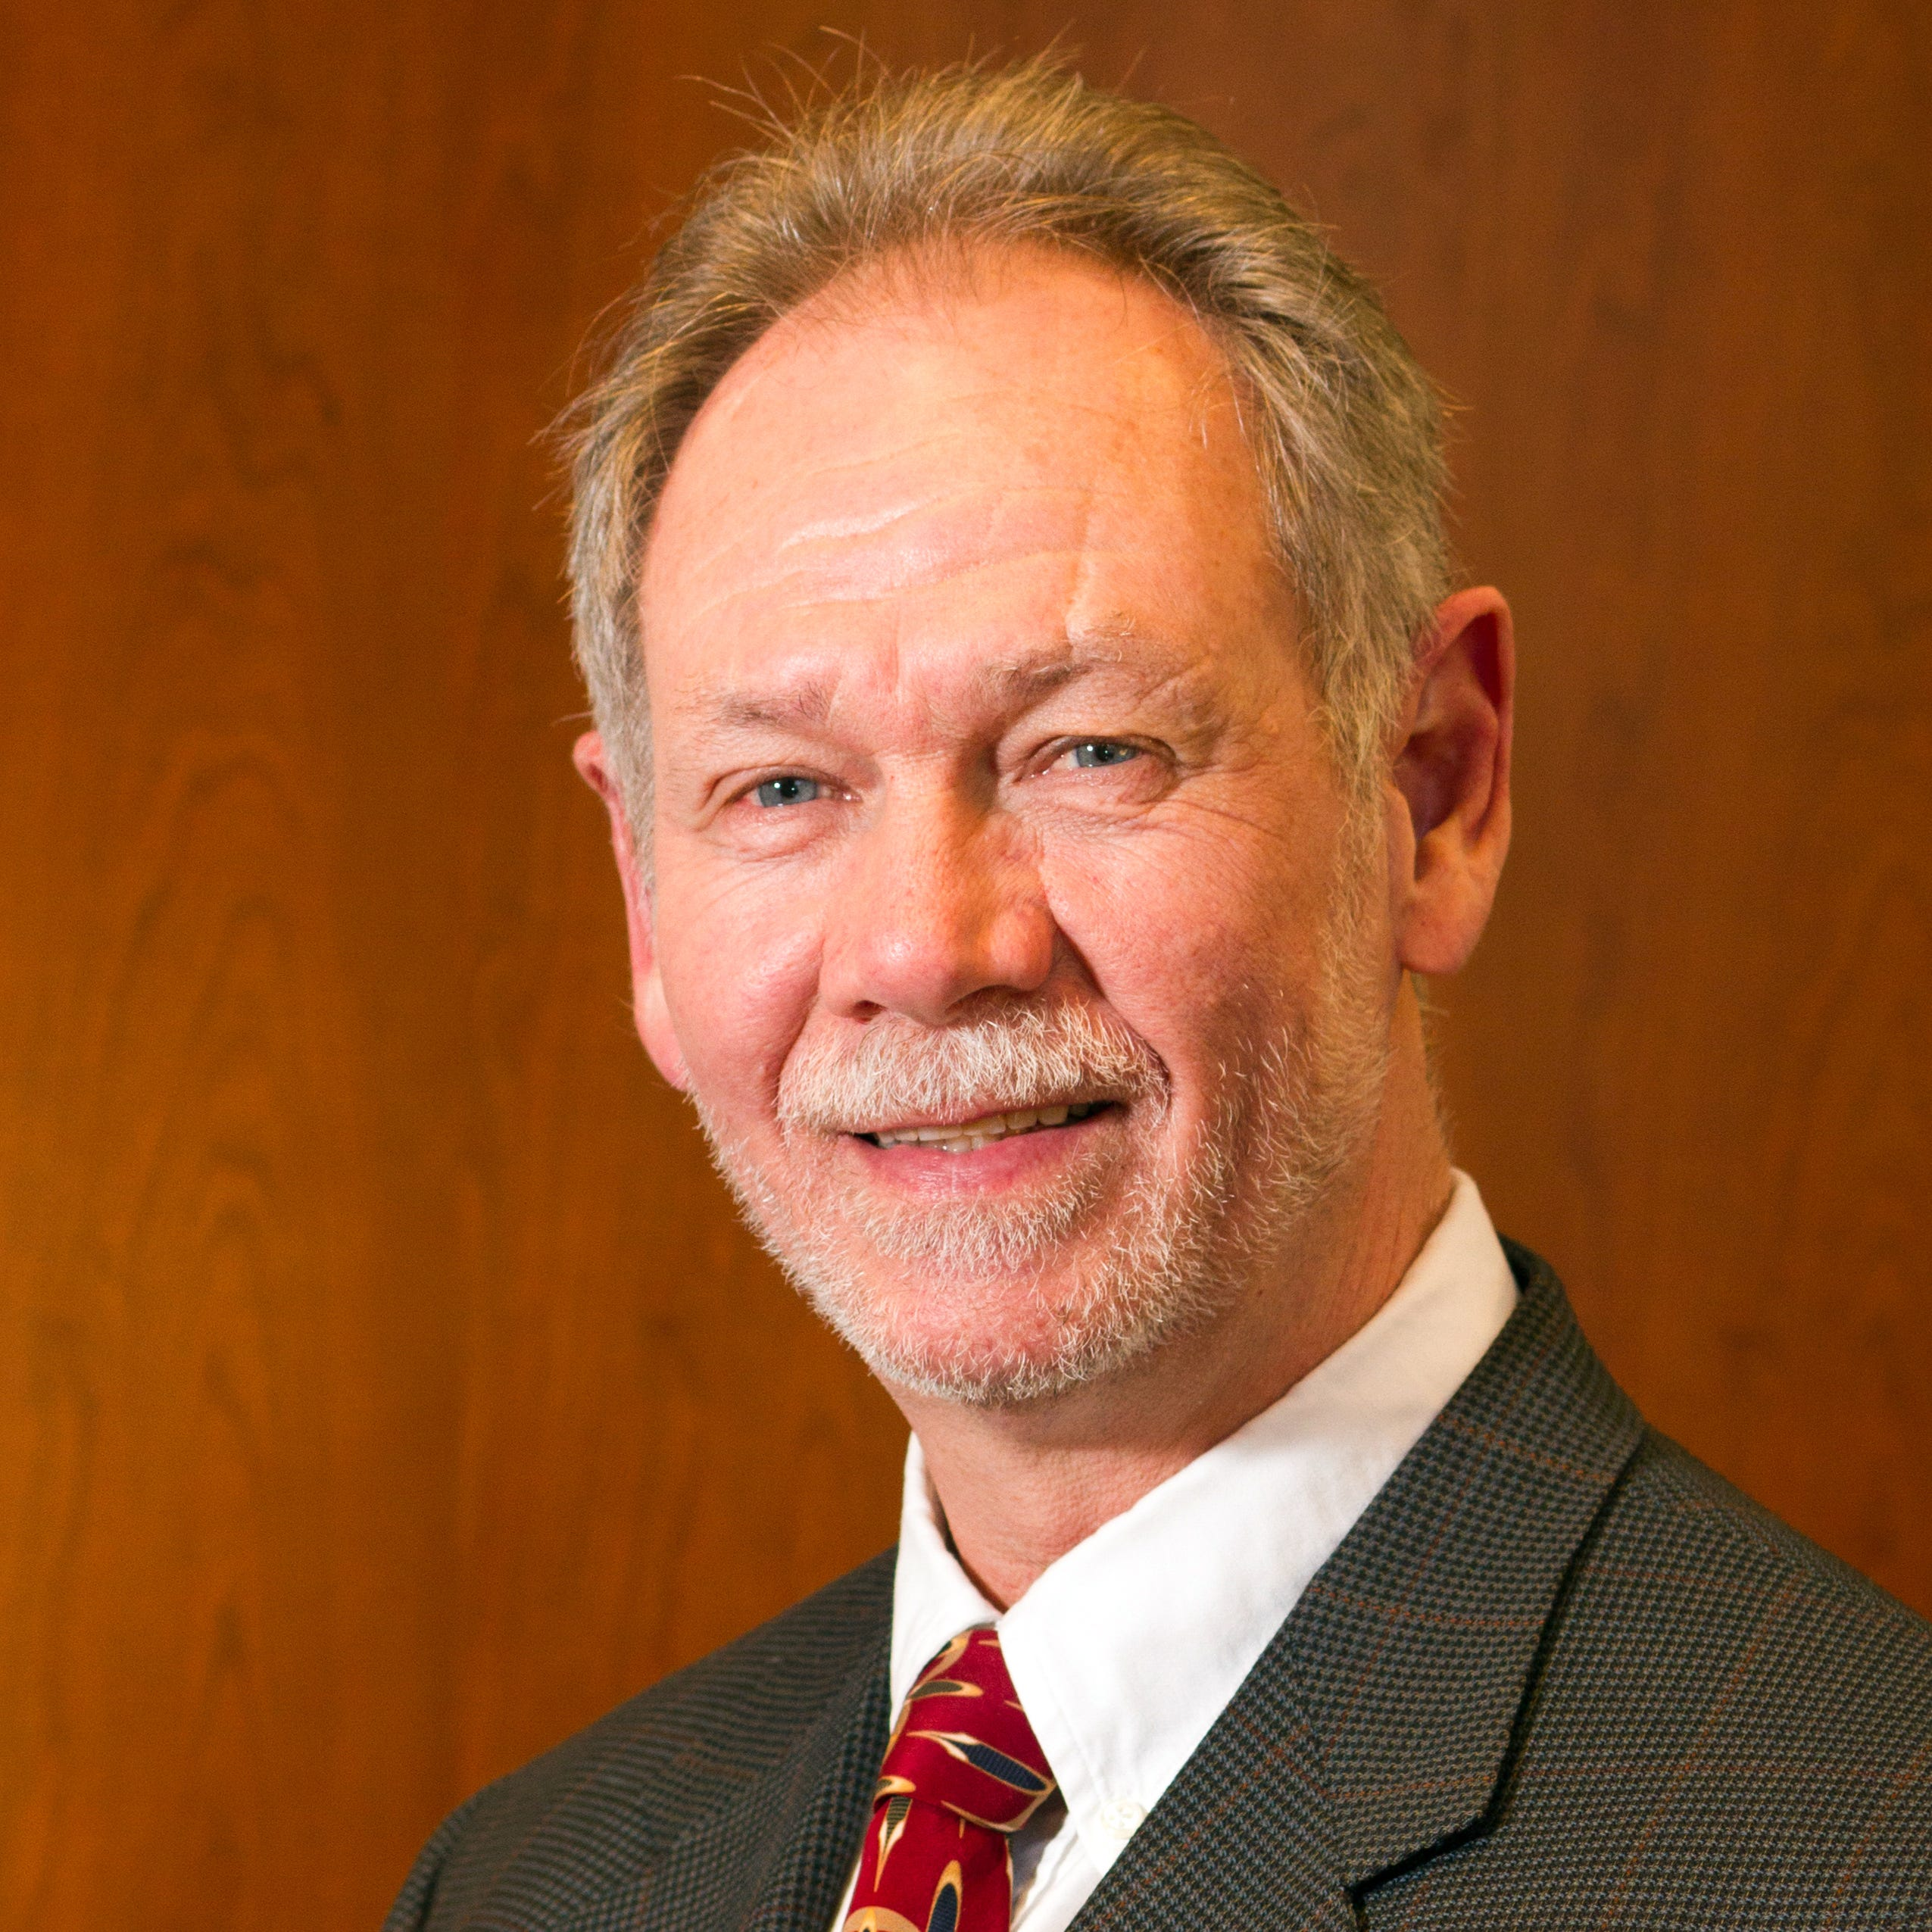 FSU offers 15-year-salute to Pensacola campus medical faculty | Guestview